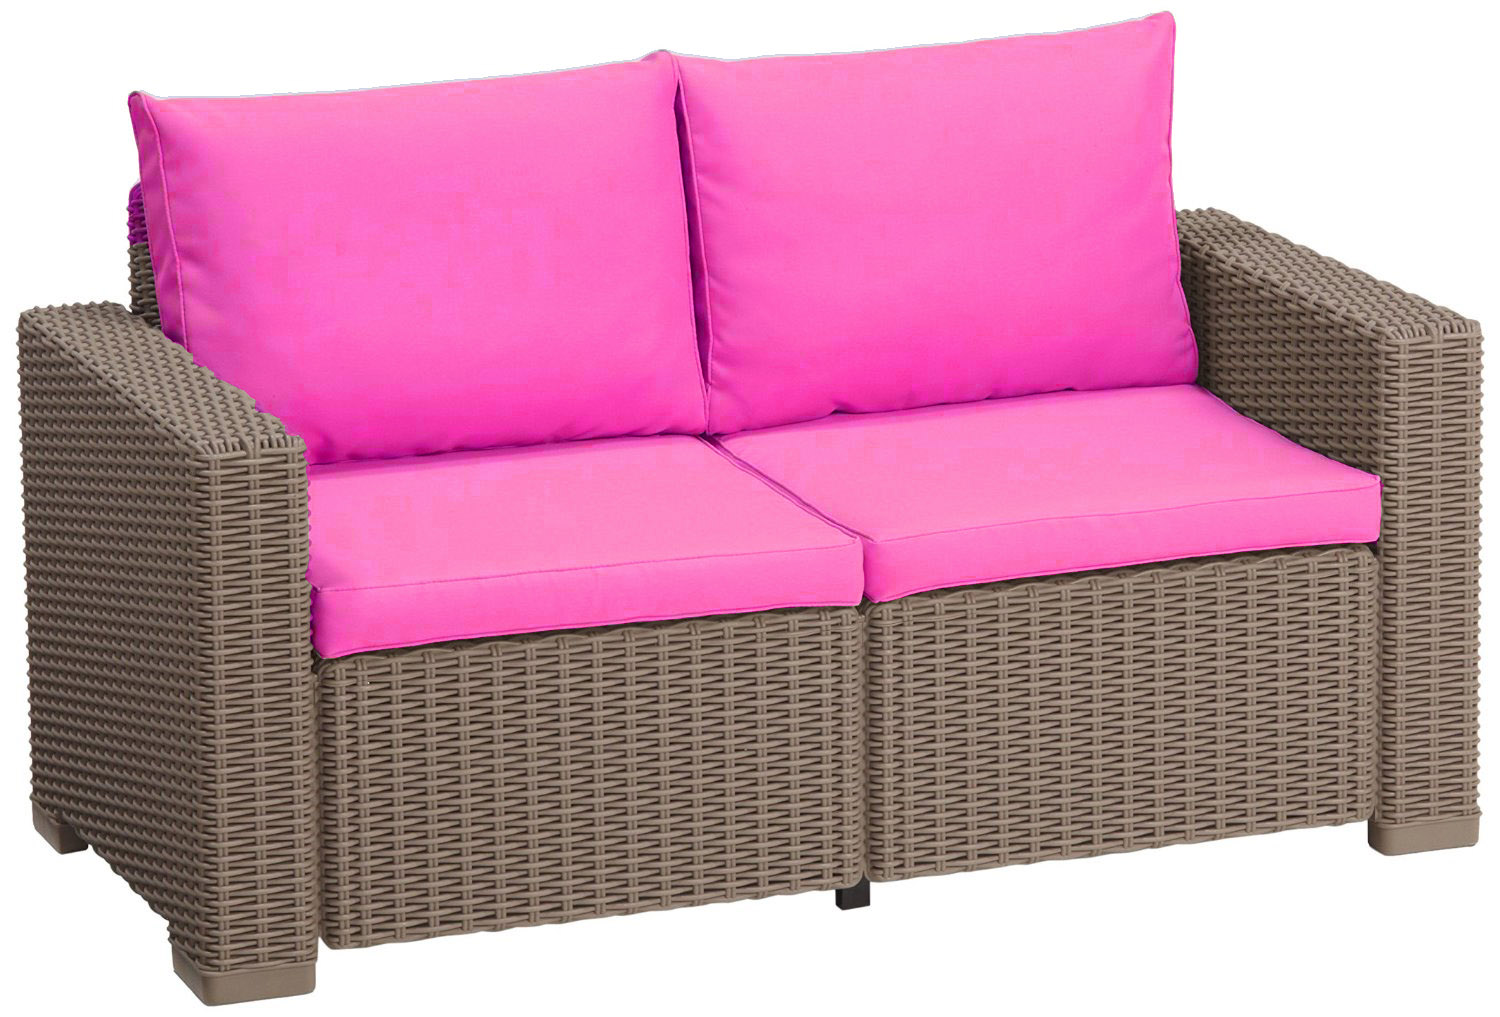 Pink Garden Furniture Cushion pads for keter allibert california rattan garden furniture cushion pads for keter allibert california rattan garden workwithnaturefo